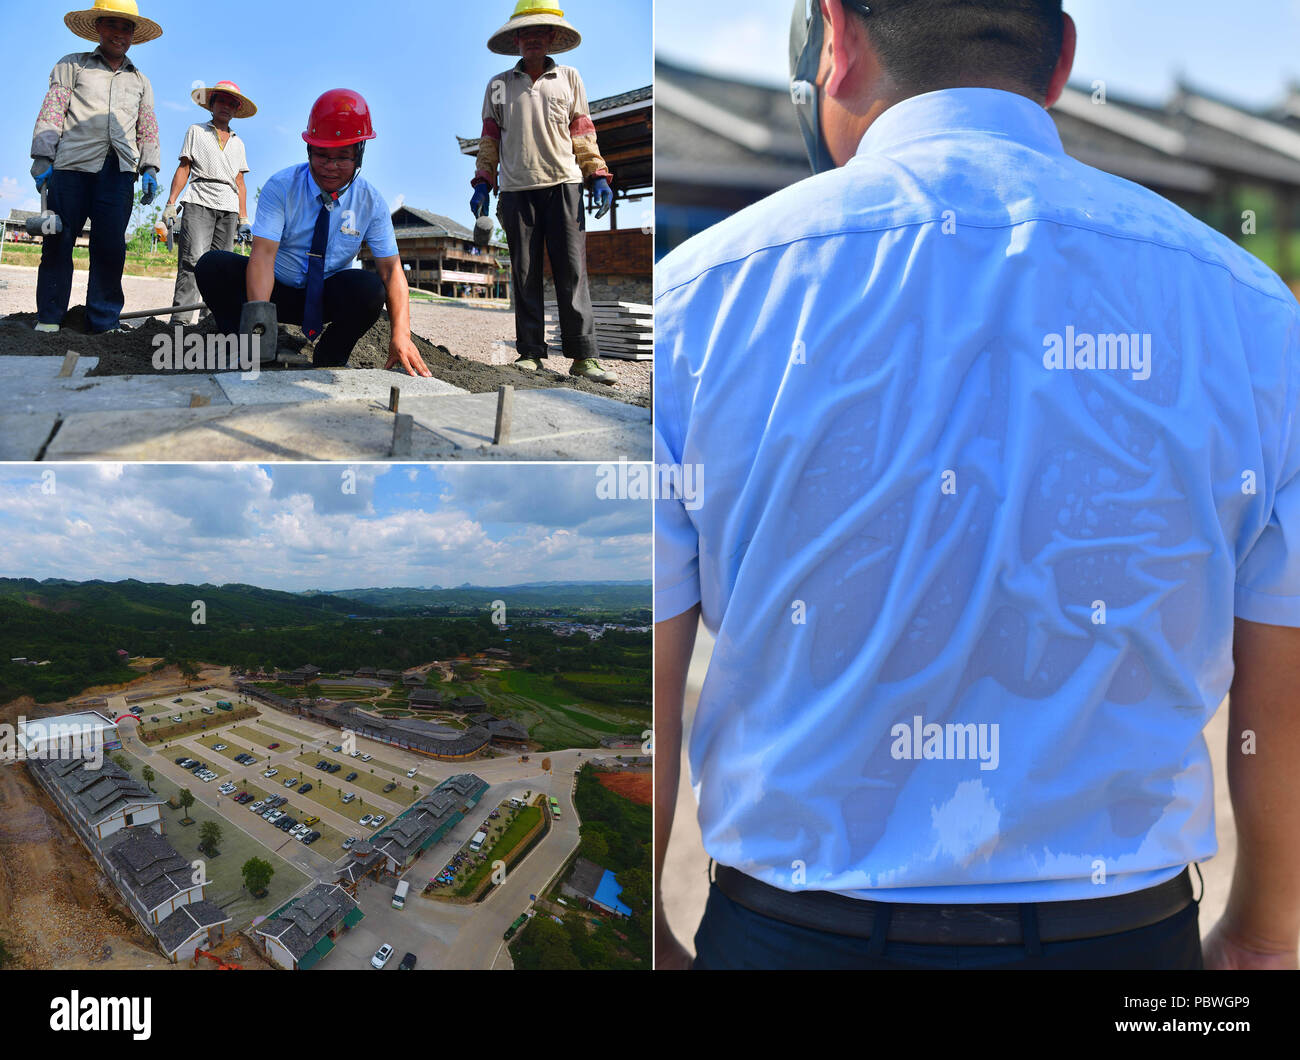 (180730) -- RONGSHUI, July 30, 2018 (Xinhua) -- The combined photo shows the construction site of the Shuanglonggou Forest Tourist Resort in Rongshui Miao Autonomous County, south China's Guangxi Zhuang Autonomous Region, July 19, 2018 (L, bottom) and the vice general manager of the resort, Pan Guixian, instructs the workers at the construction site (L, top) with his shirt soaked by sweat in the summer heat (R), July 20, 2018.  Due to harsh environmental conditions, Rongshui has long been a less developed area in China. Up to now, there are still 76,800 impoverished people living in the county - Stock Image